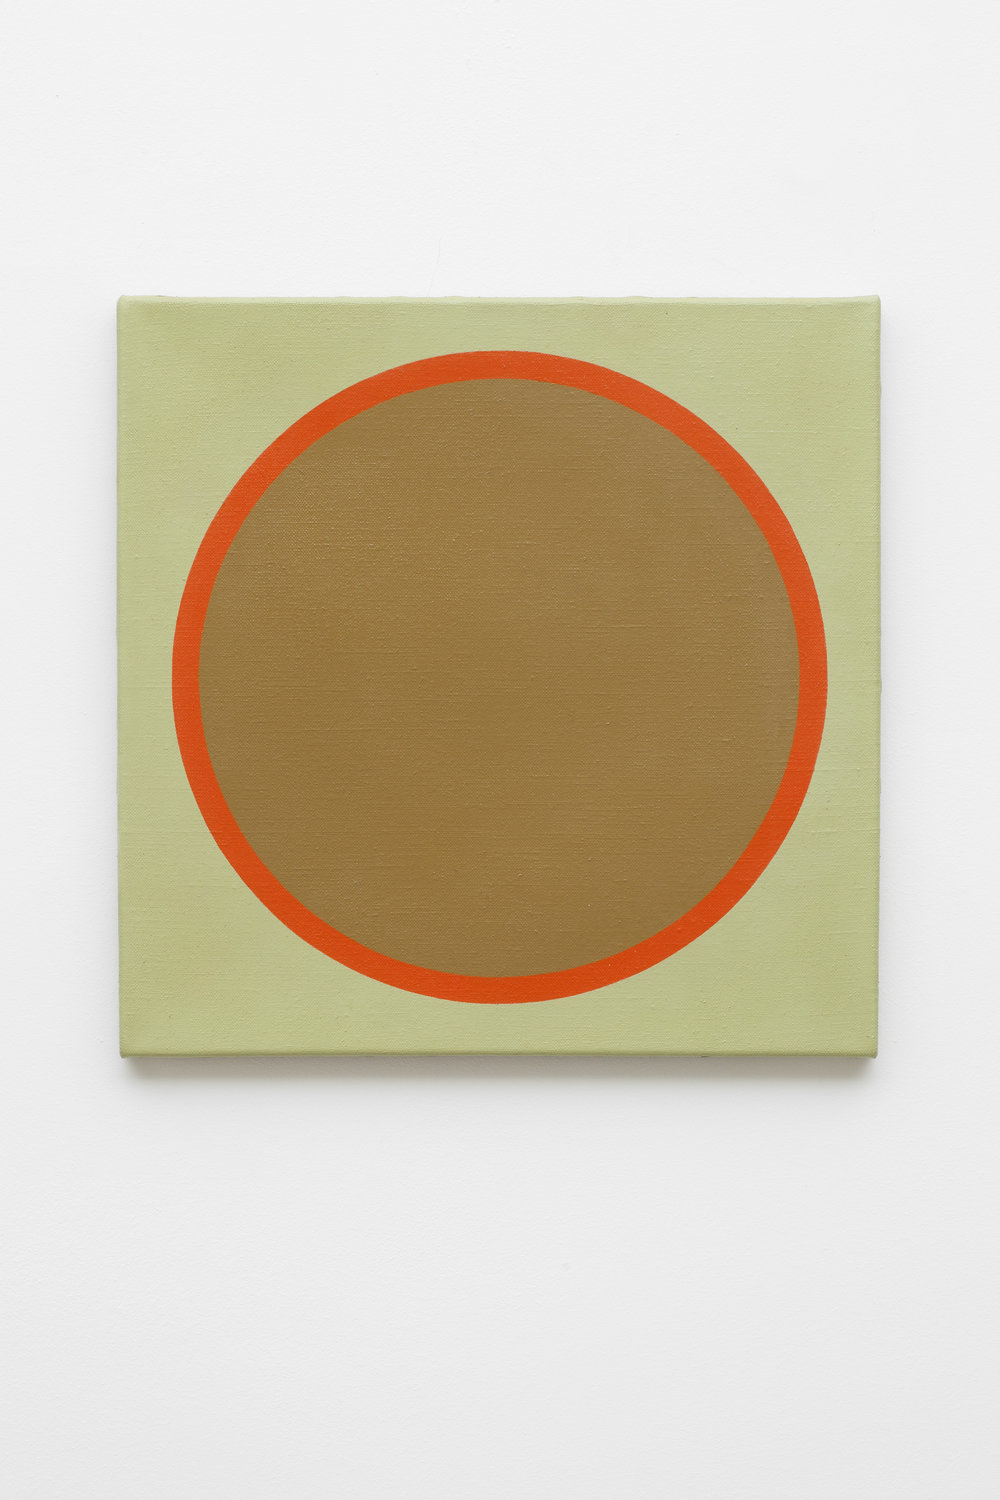 Friedrich Teepe  1969-1 , 1969 acrylic on canvas, 50 x 50 cm